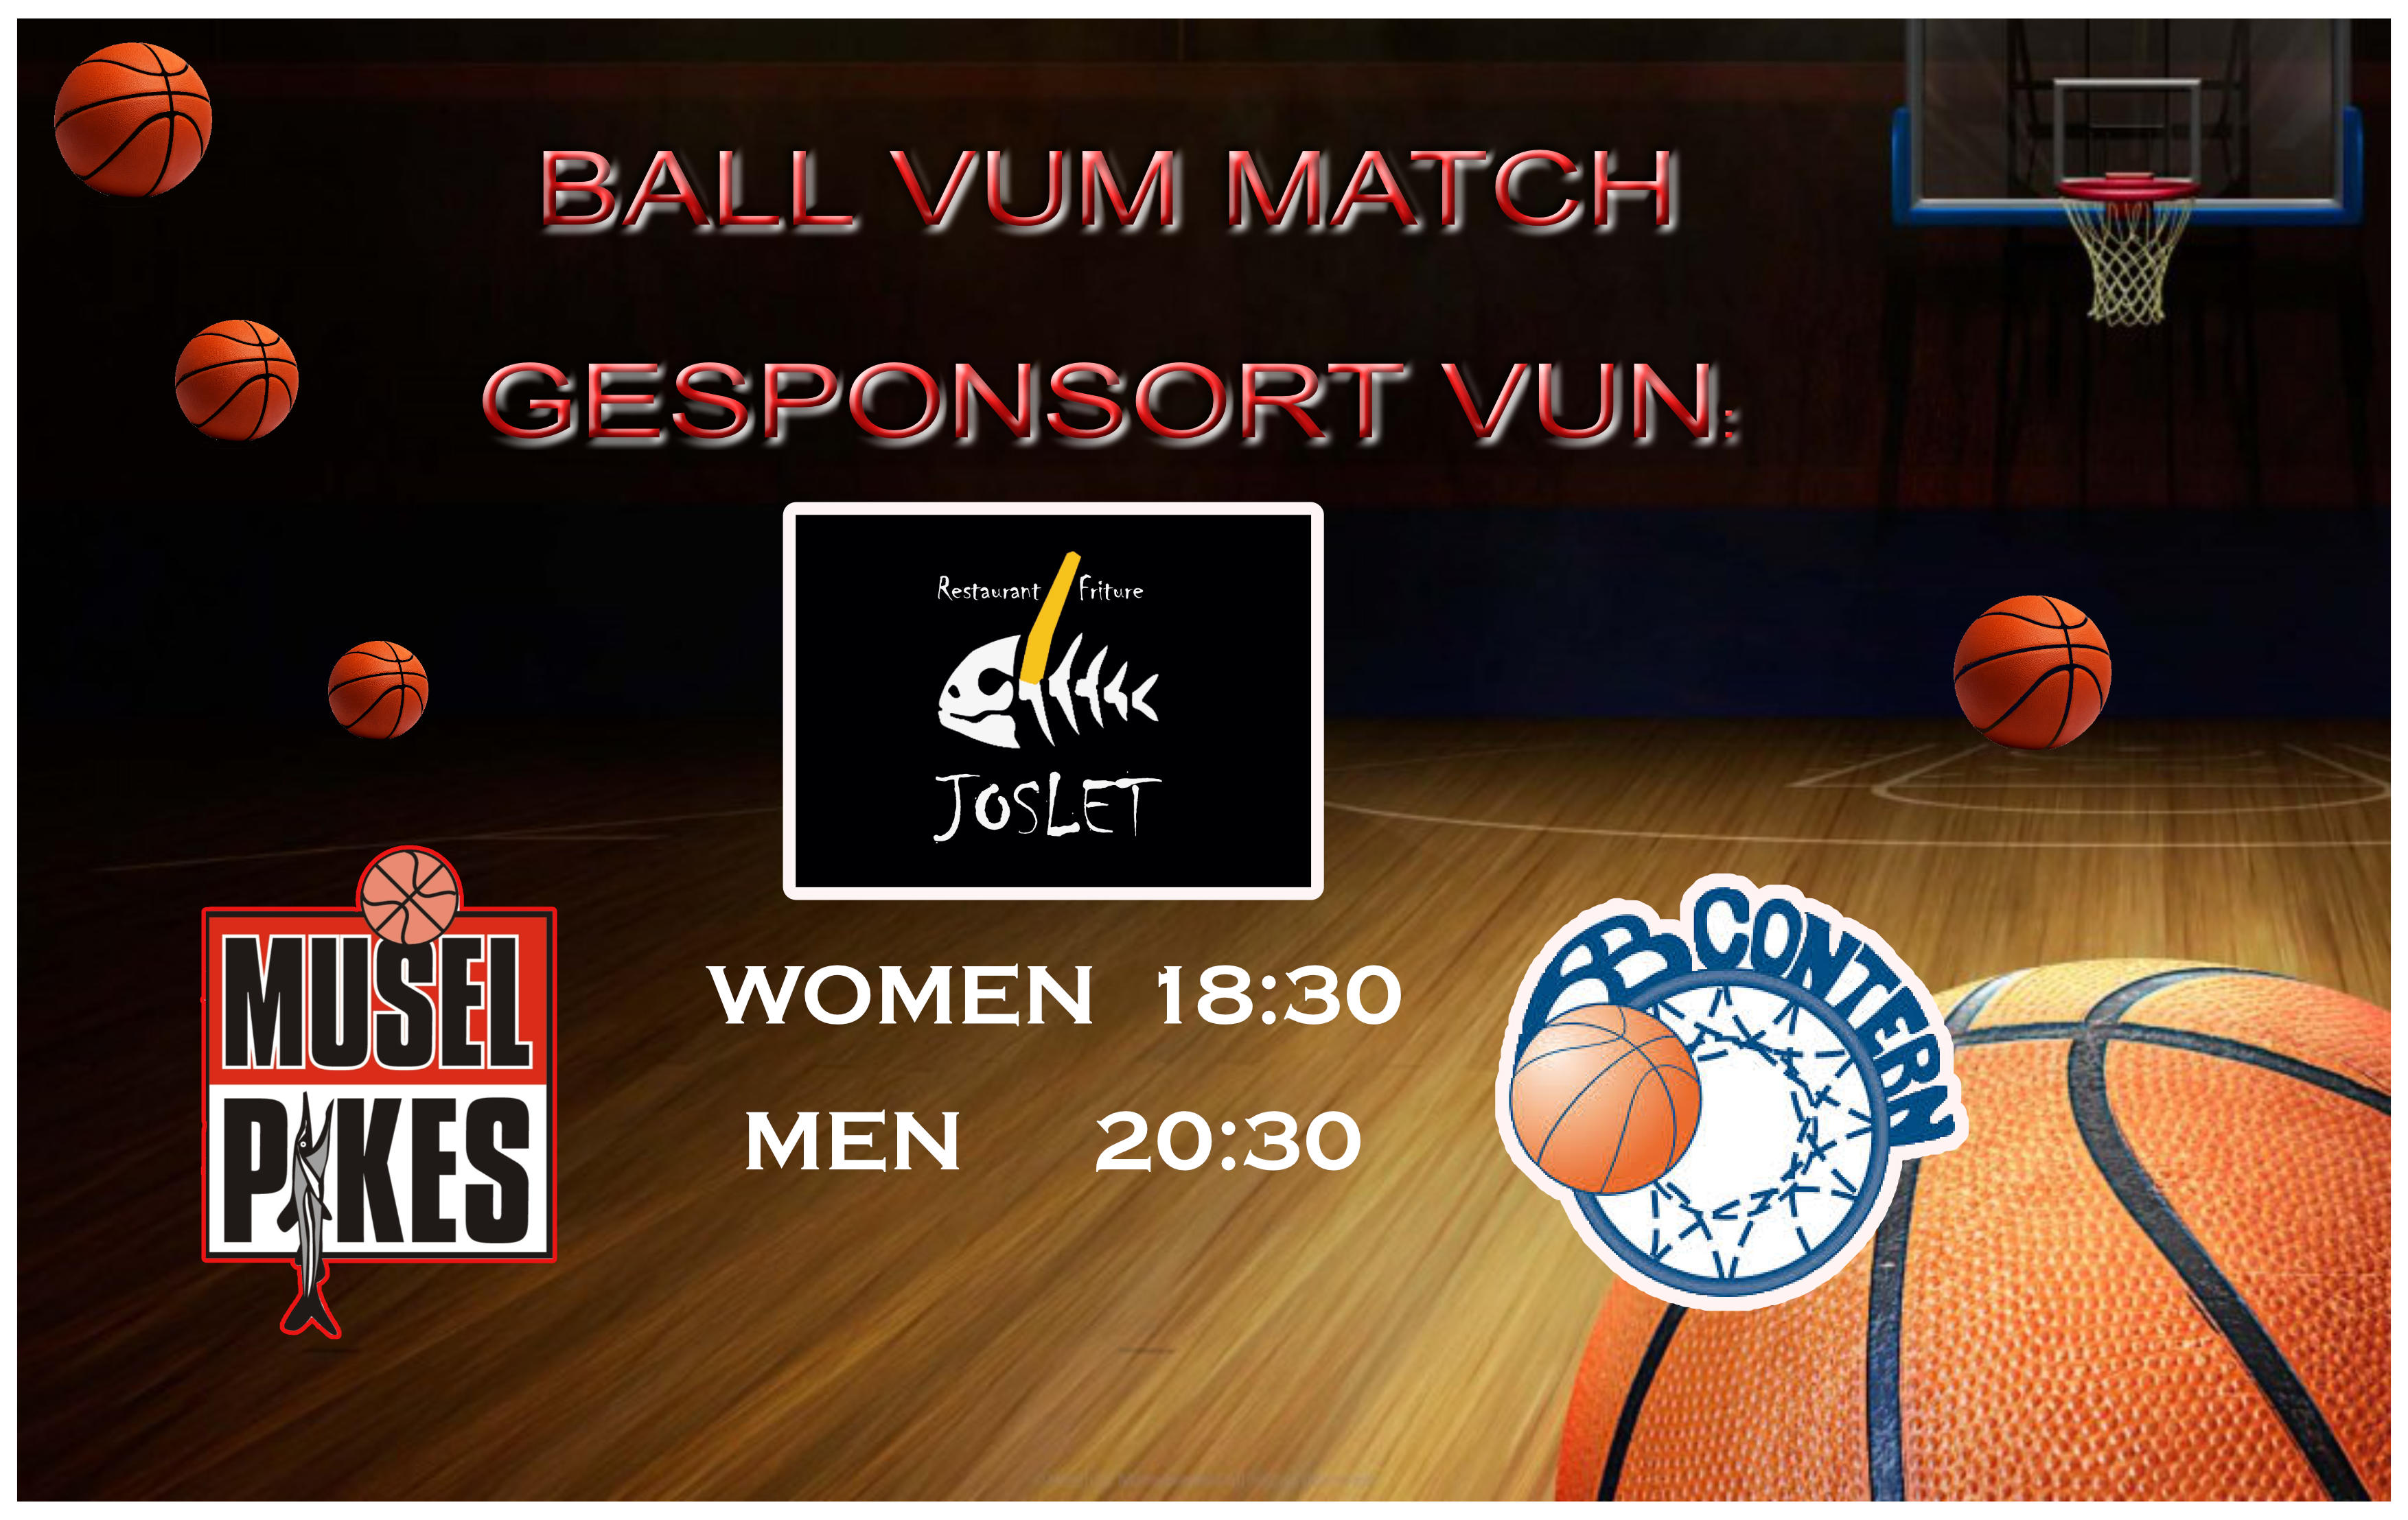 Ball vum match